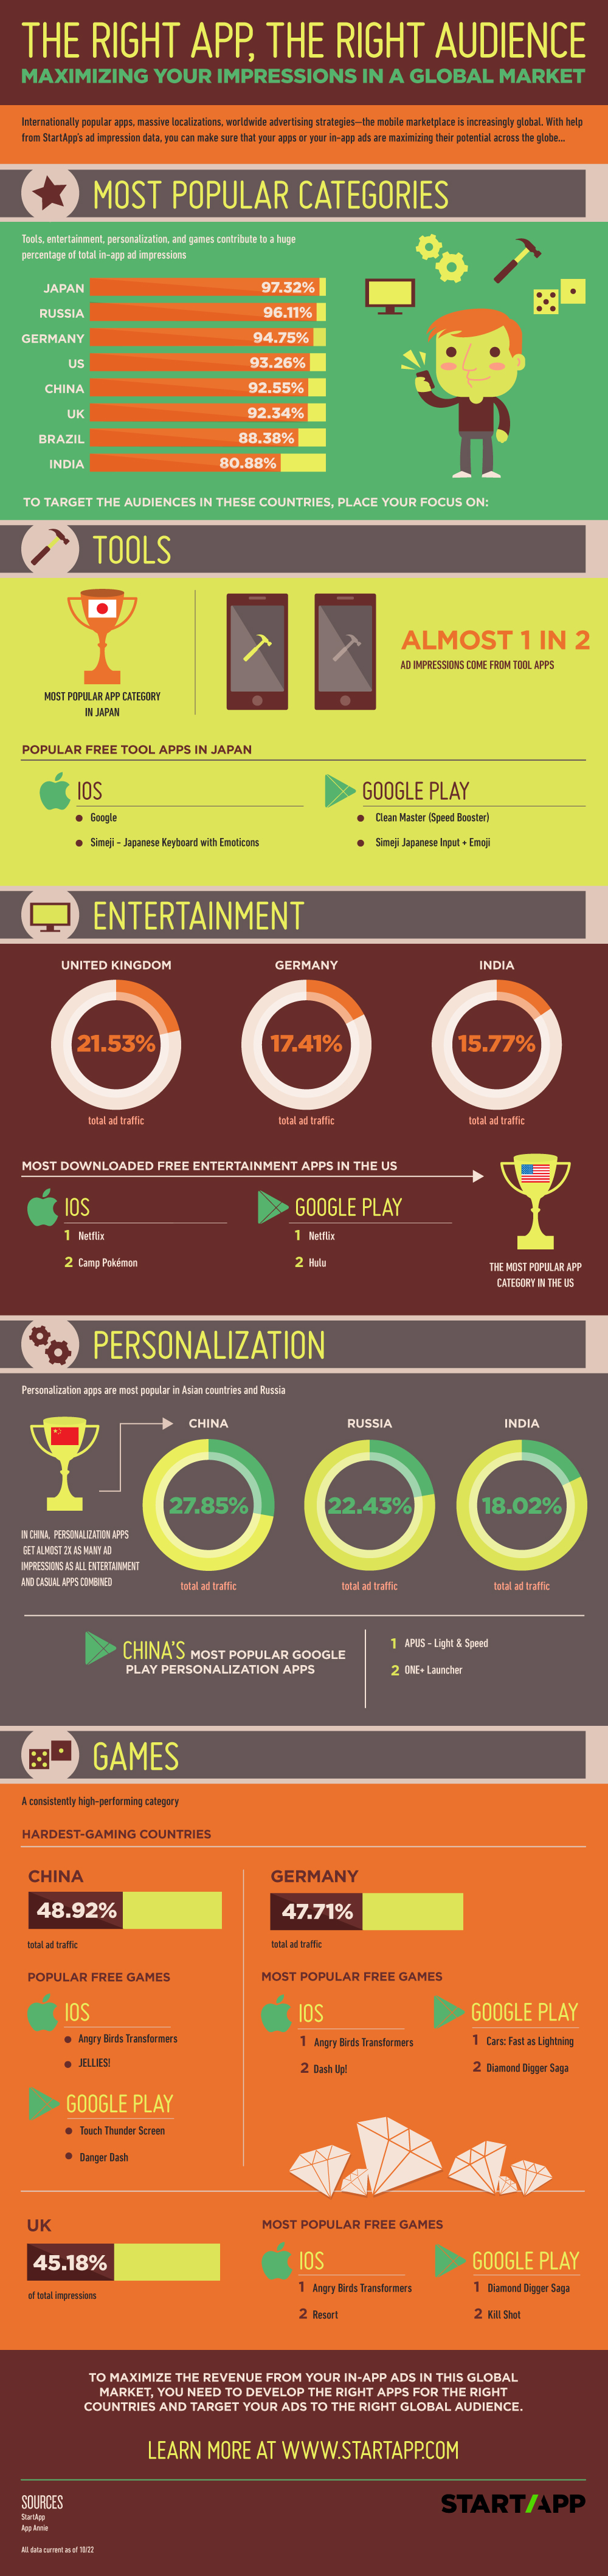 infografia-categorias-apps-mercados